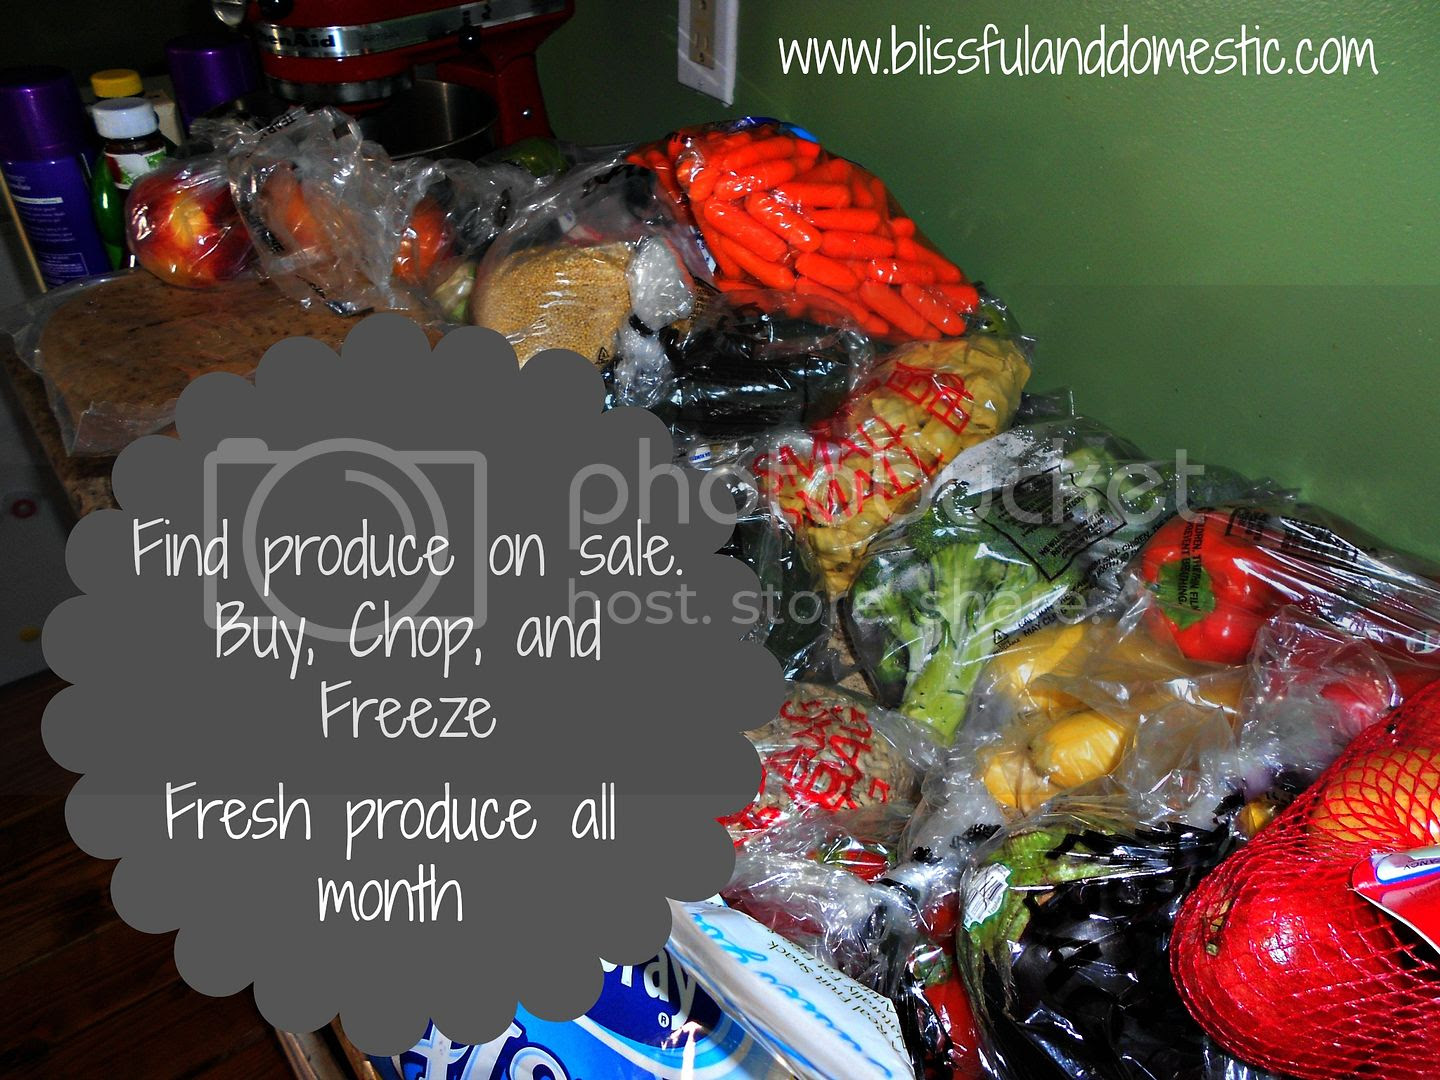 Cut your grocery bill in half by following these tips and tricks - Blissful and Domestic - www.blissfulanddomestic.com